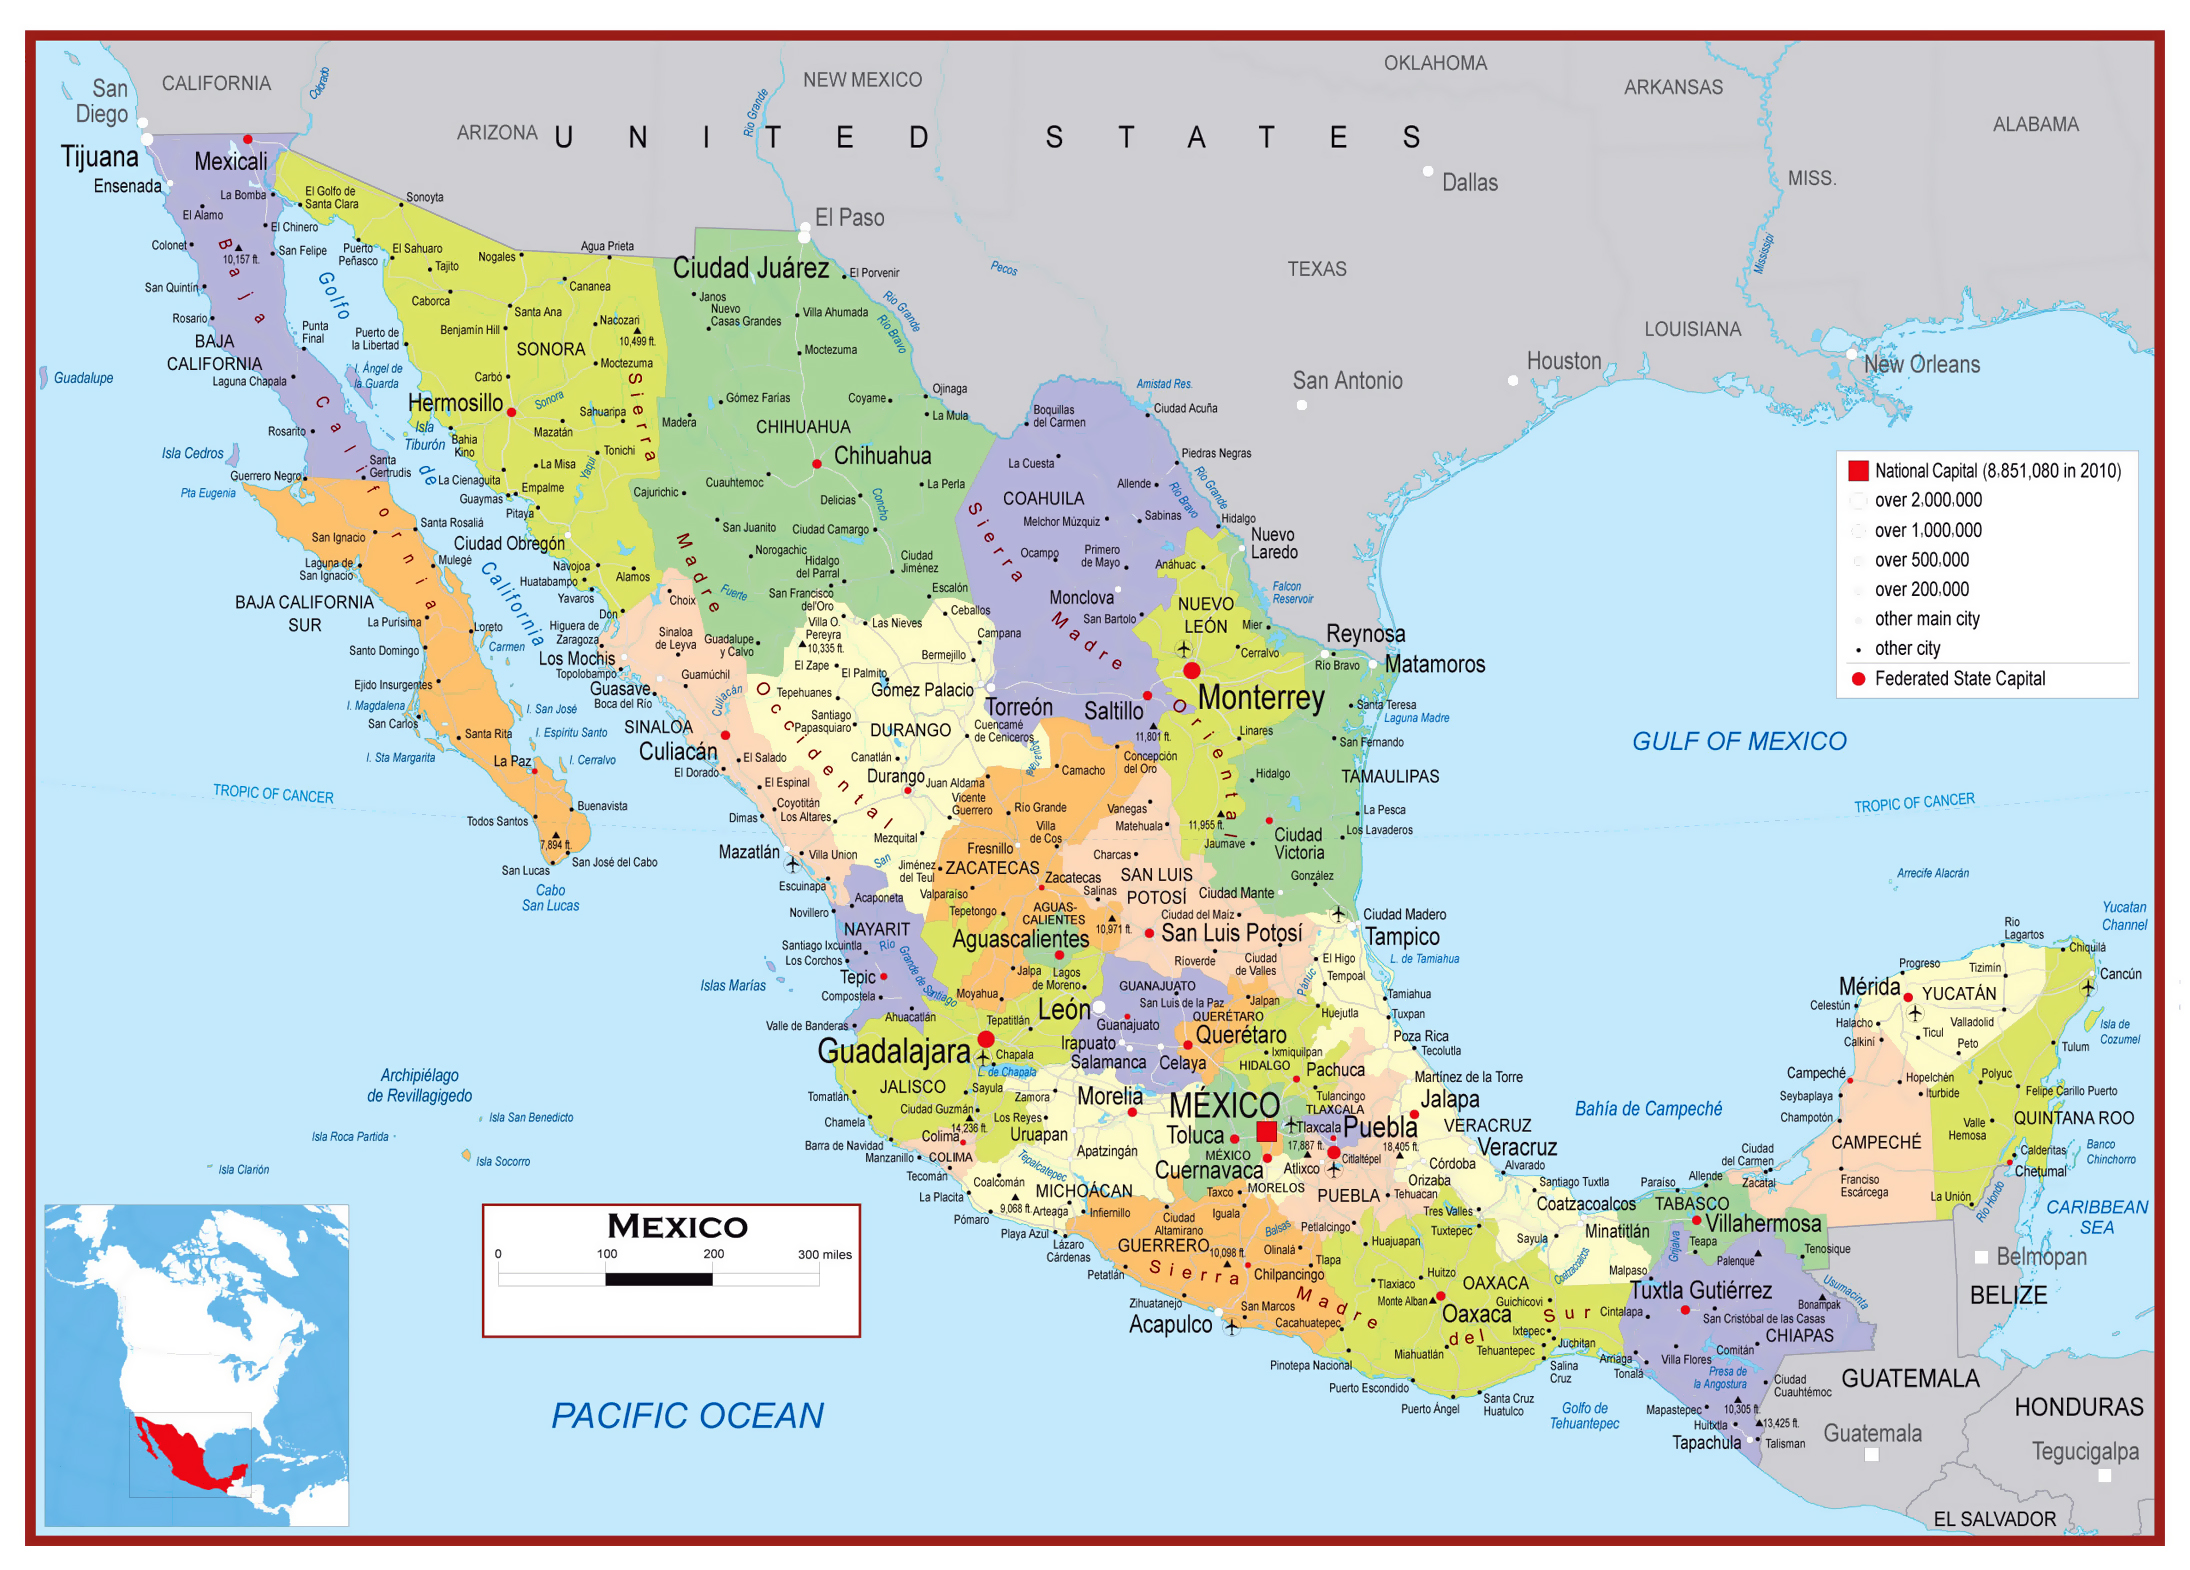 Large detailed political and administrative map of Mexico ... on map of north america rail, map of north america water, map of north america agriculture, map of north america food, map of north america refineries, map of north america time zones, map of north america waterways, map of north america auto plants, usa map airports, map china airports, map of north america national parks, map of north america ports, central america airports, map of north america rivers, map of north america cement plants, america's airports, map of north america railway,